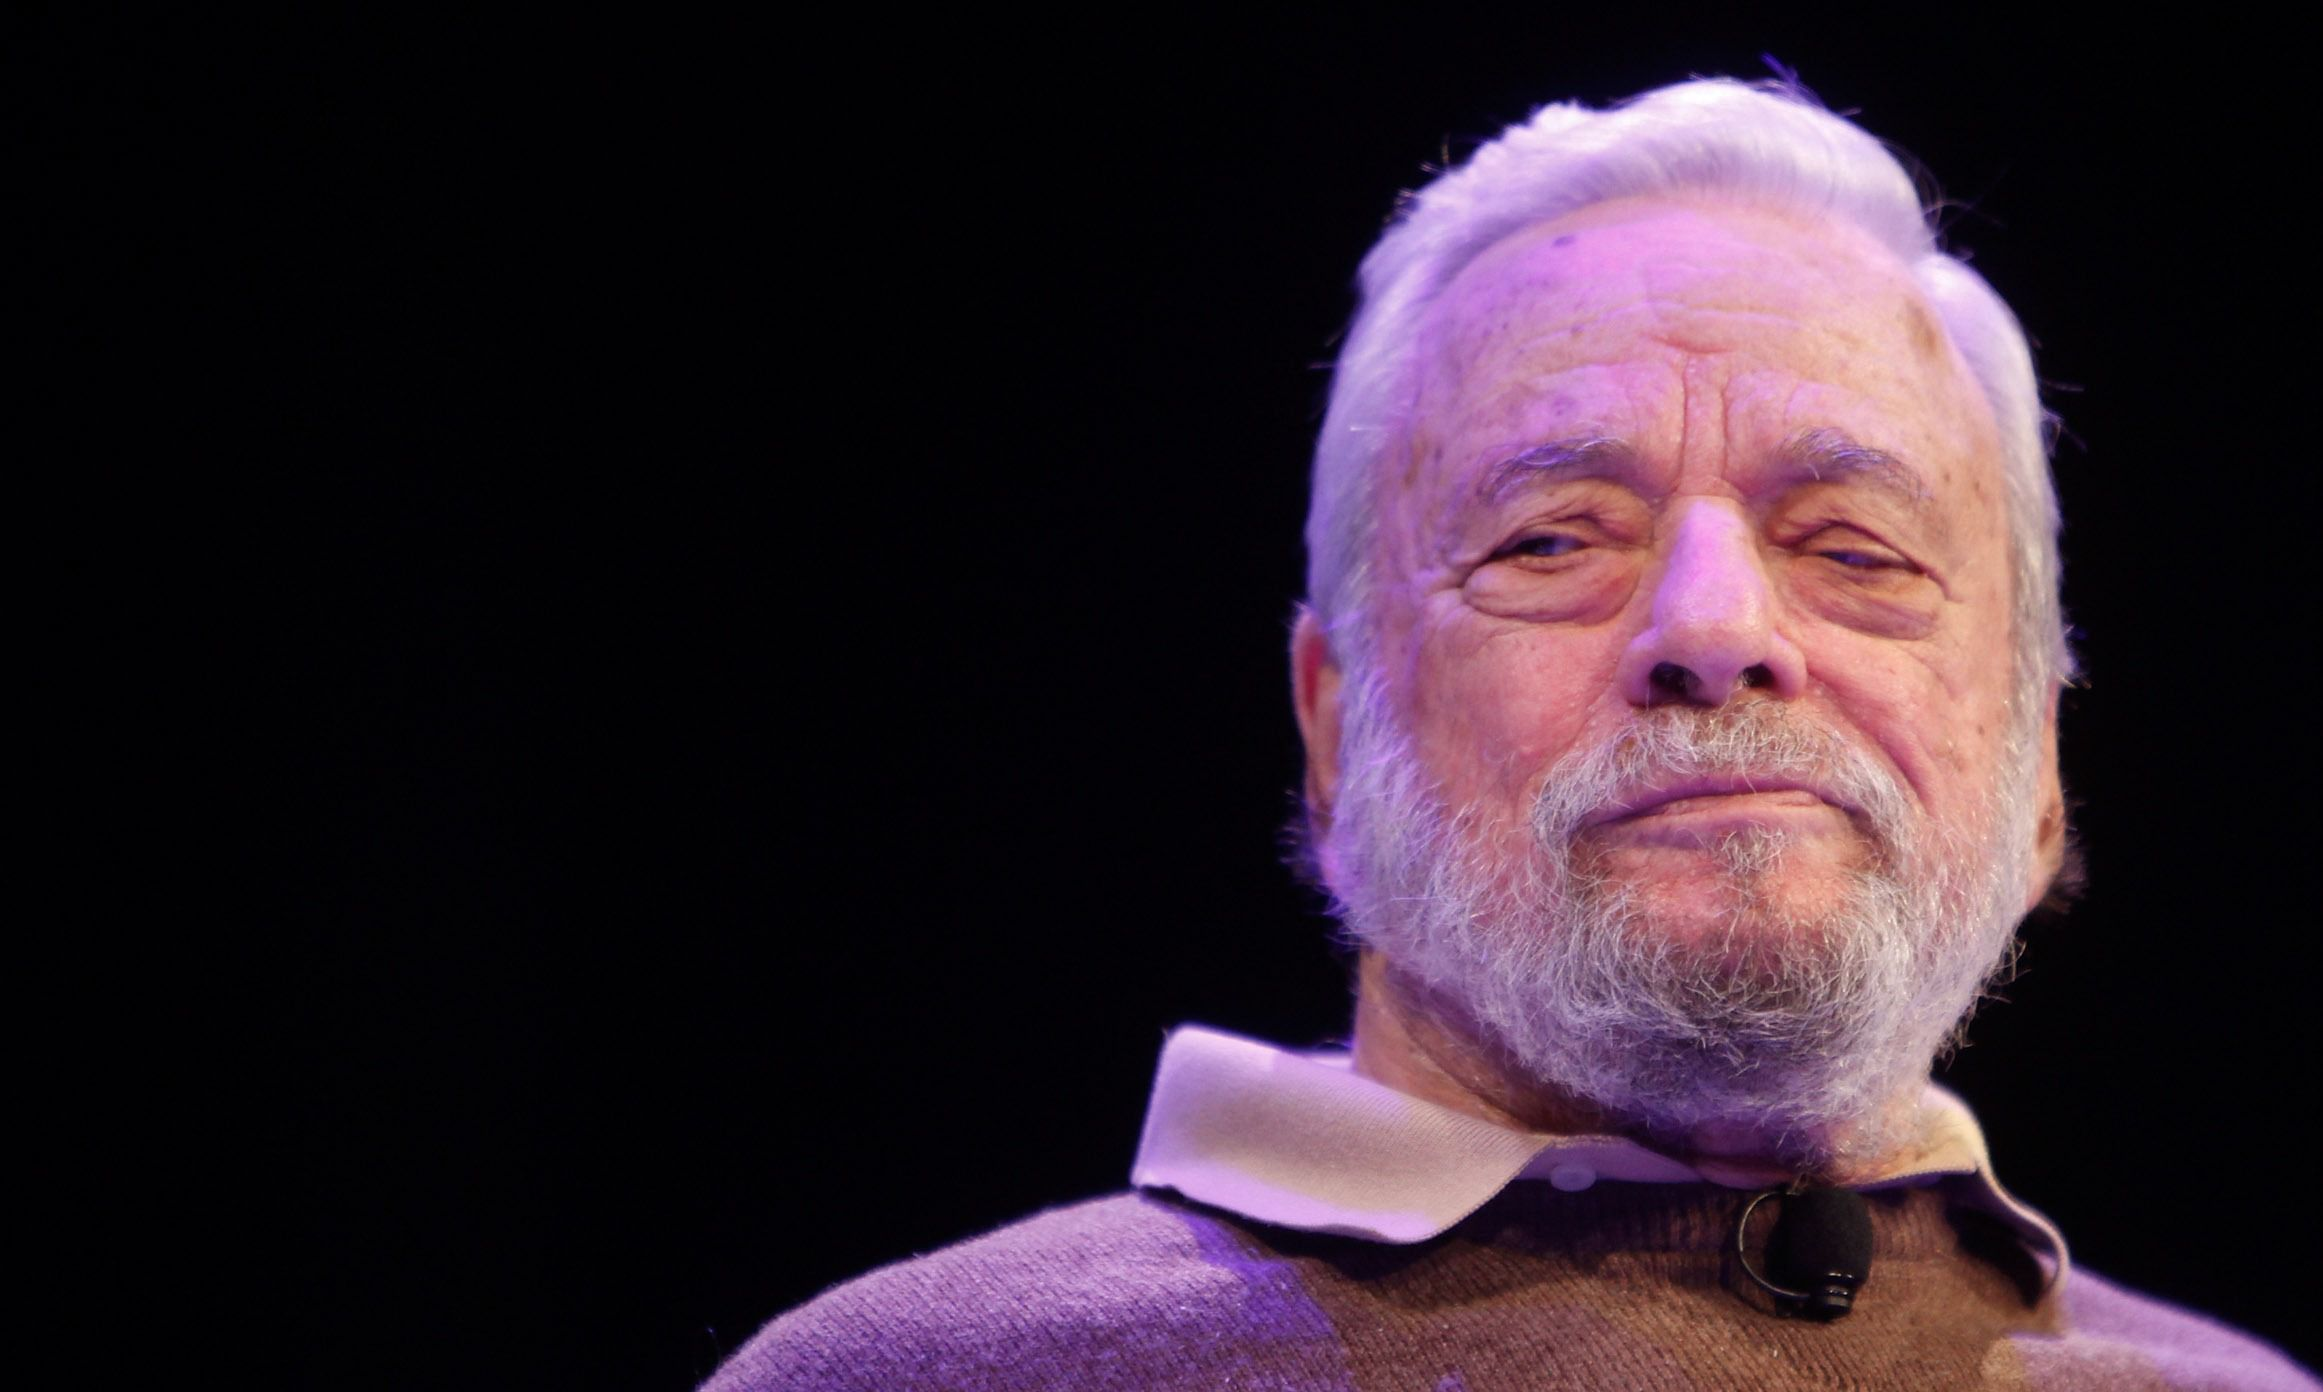 a biography of stephen sondheim Stephen sondheim was the turner classic movies programmer for march 22, 2005, the cable network's way of honoring him on his 75th birthday.